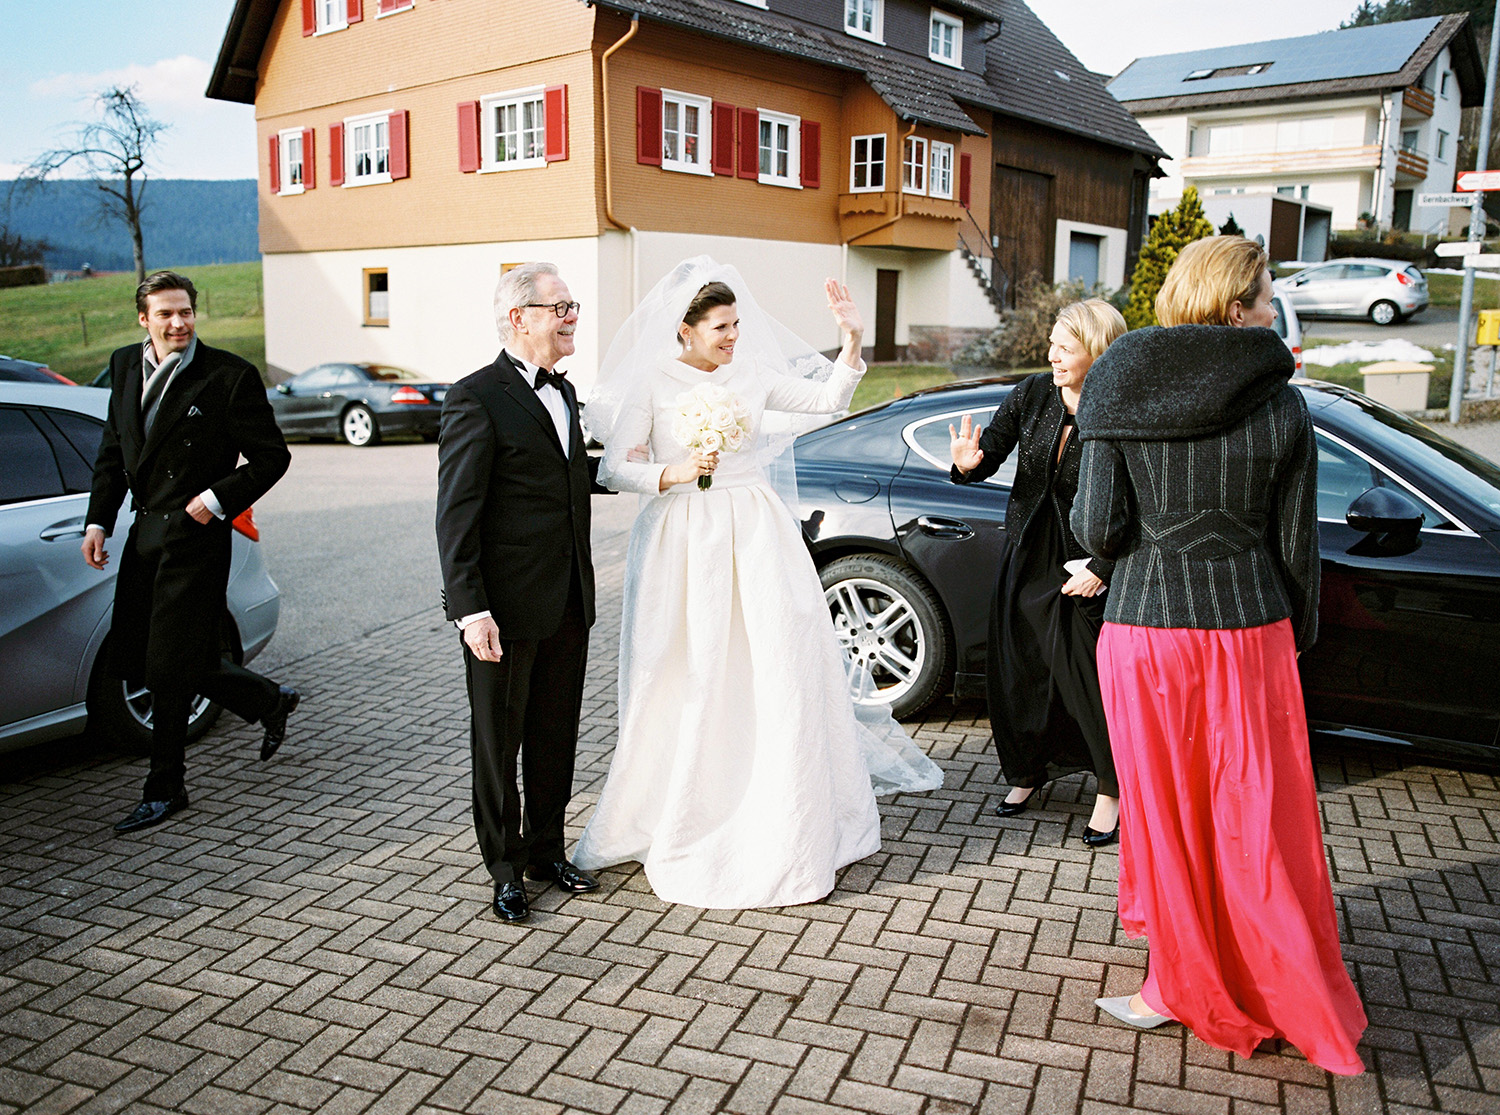 Fotograf Konstanz - Hochzeit Stephanie Stefan Baiersbronn Bareiss Elmar Feuerbacher Photography 35 - Noble winter wedding in Baiersbronn in Bareiss  - 108 -